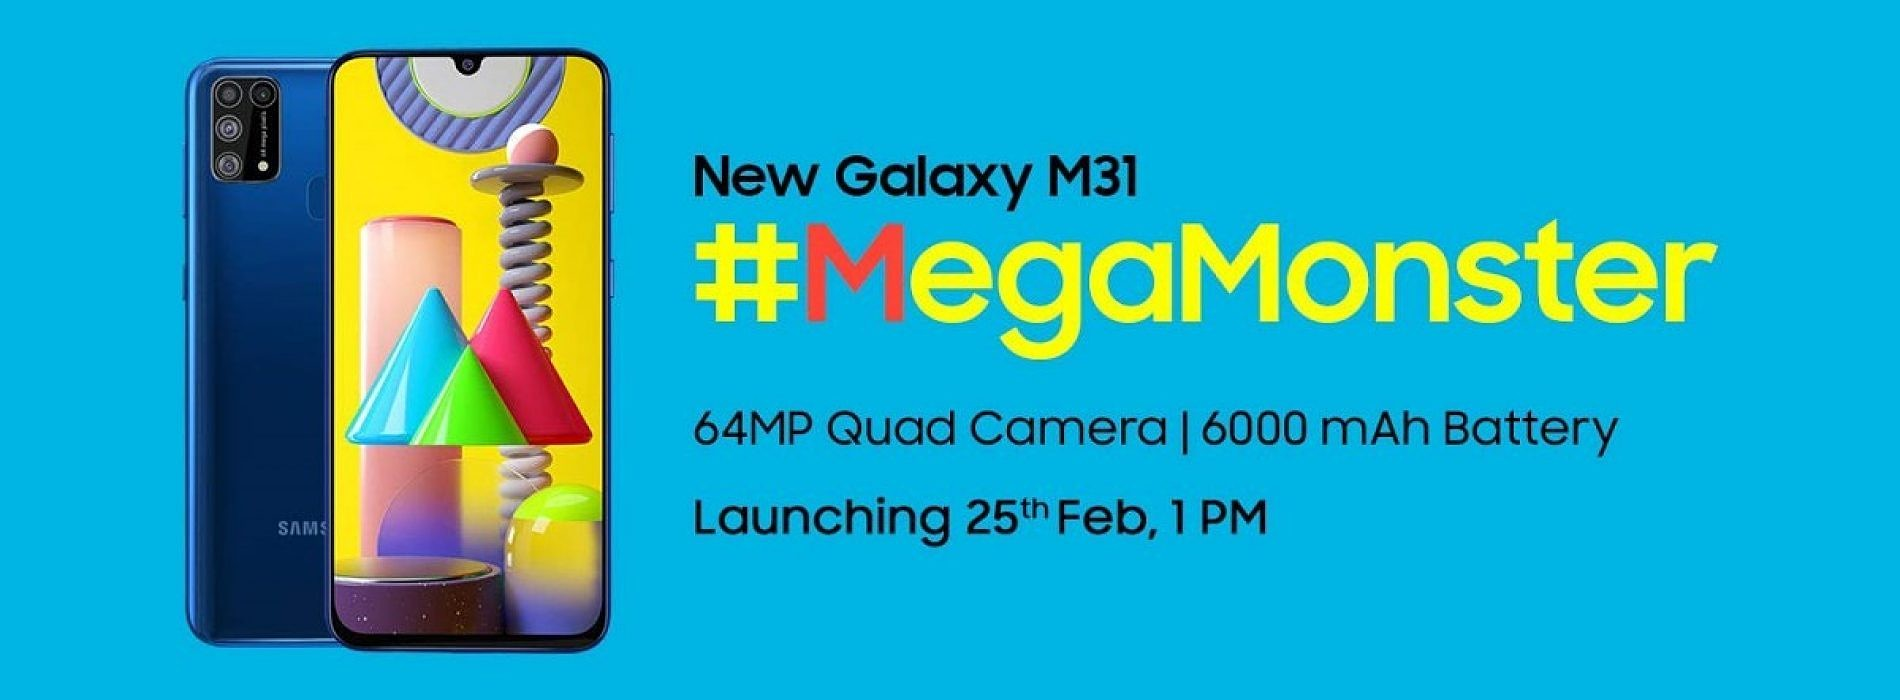 Update Launching On 25th Feb Samsung Teases The Galaxy M31 With A 64mp Camera